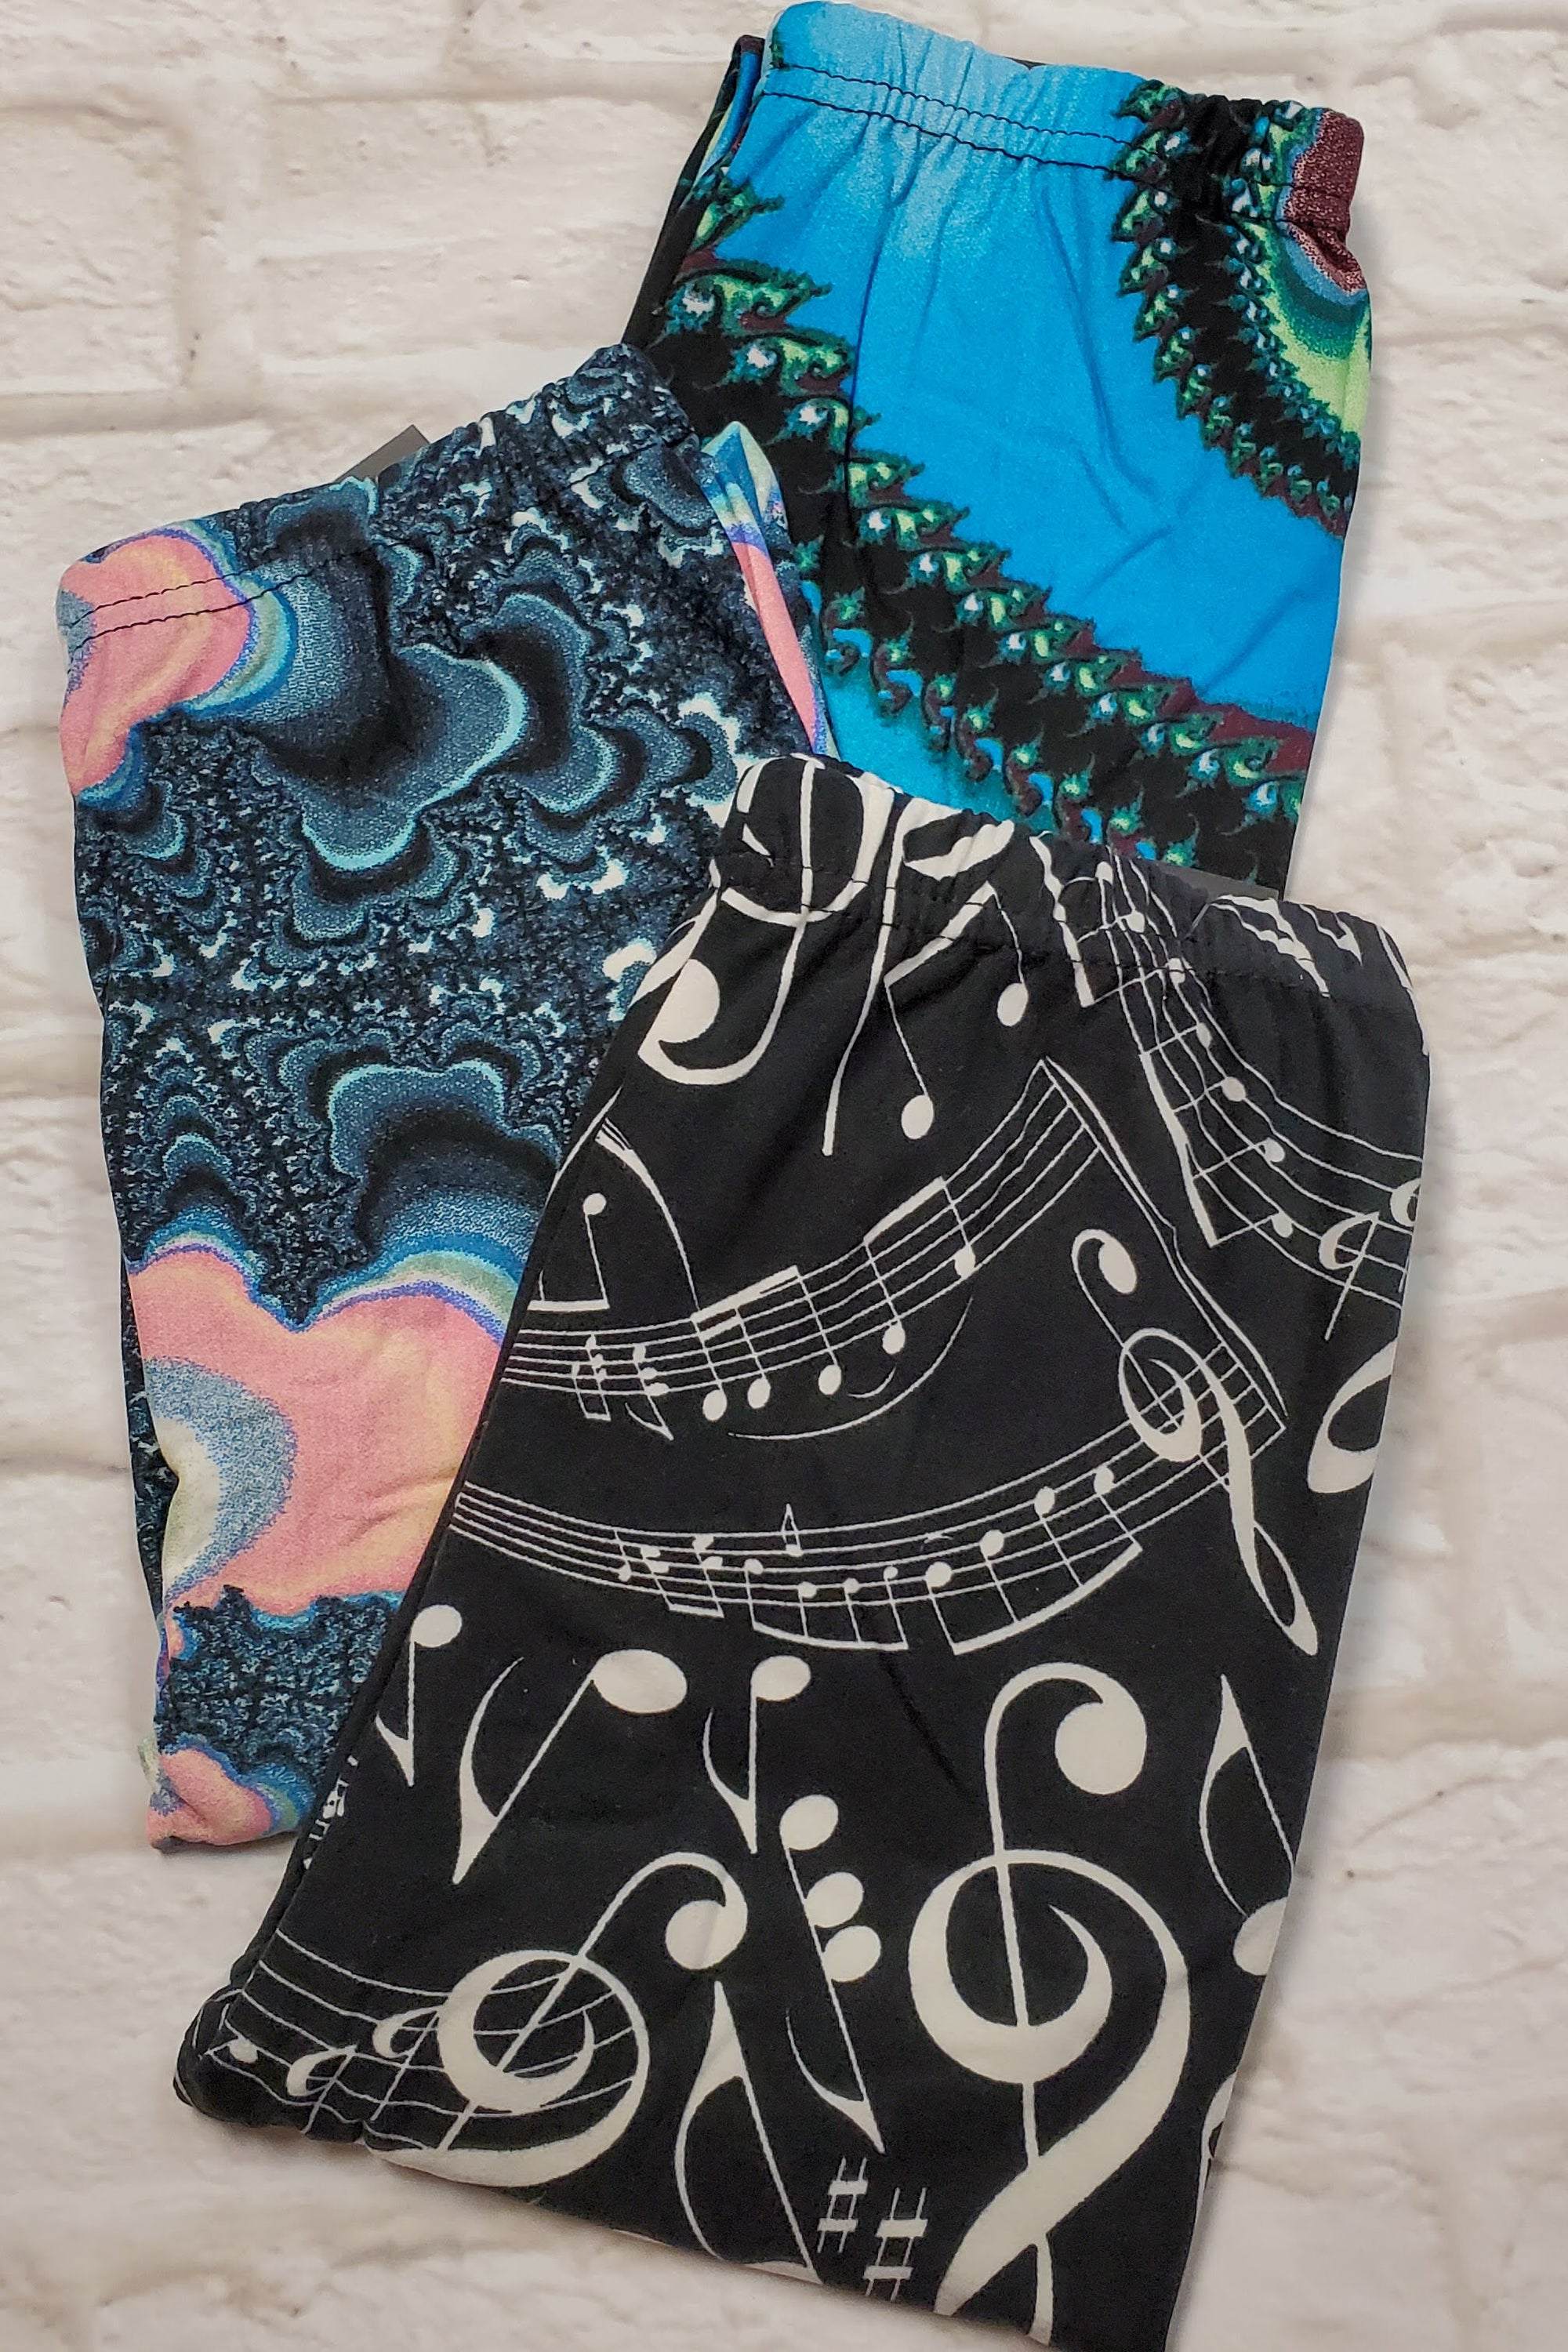 KIDS LEGGINGS CLEARANCE 3pk BUNDLE G Specialized S/M (as pictured)